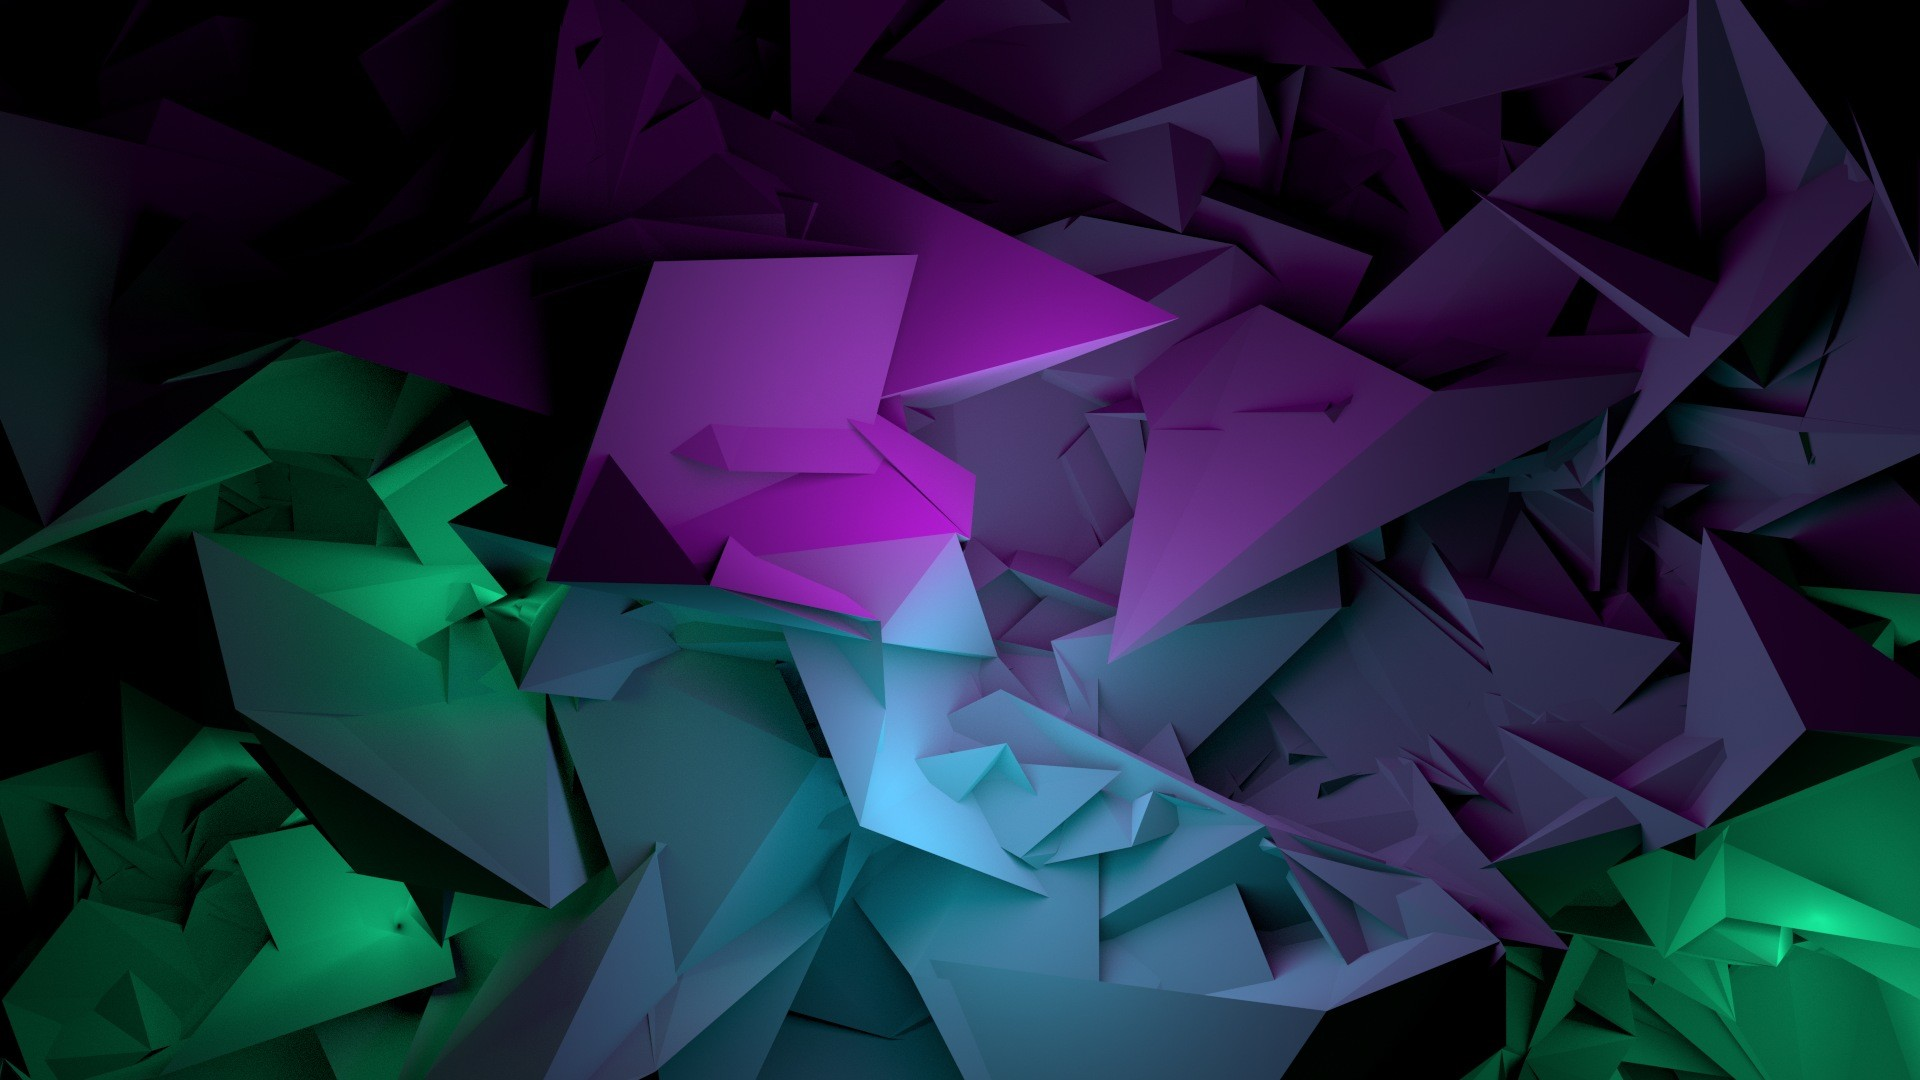 Wallpaper abstract, shapes, purple, green